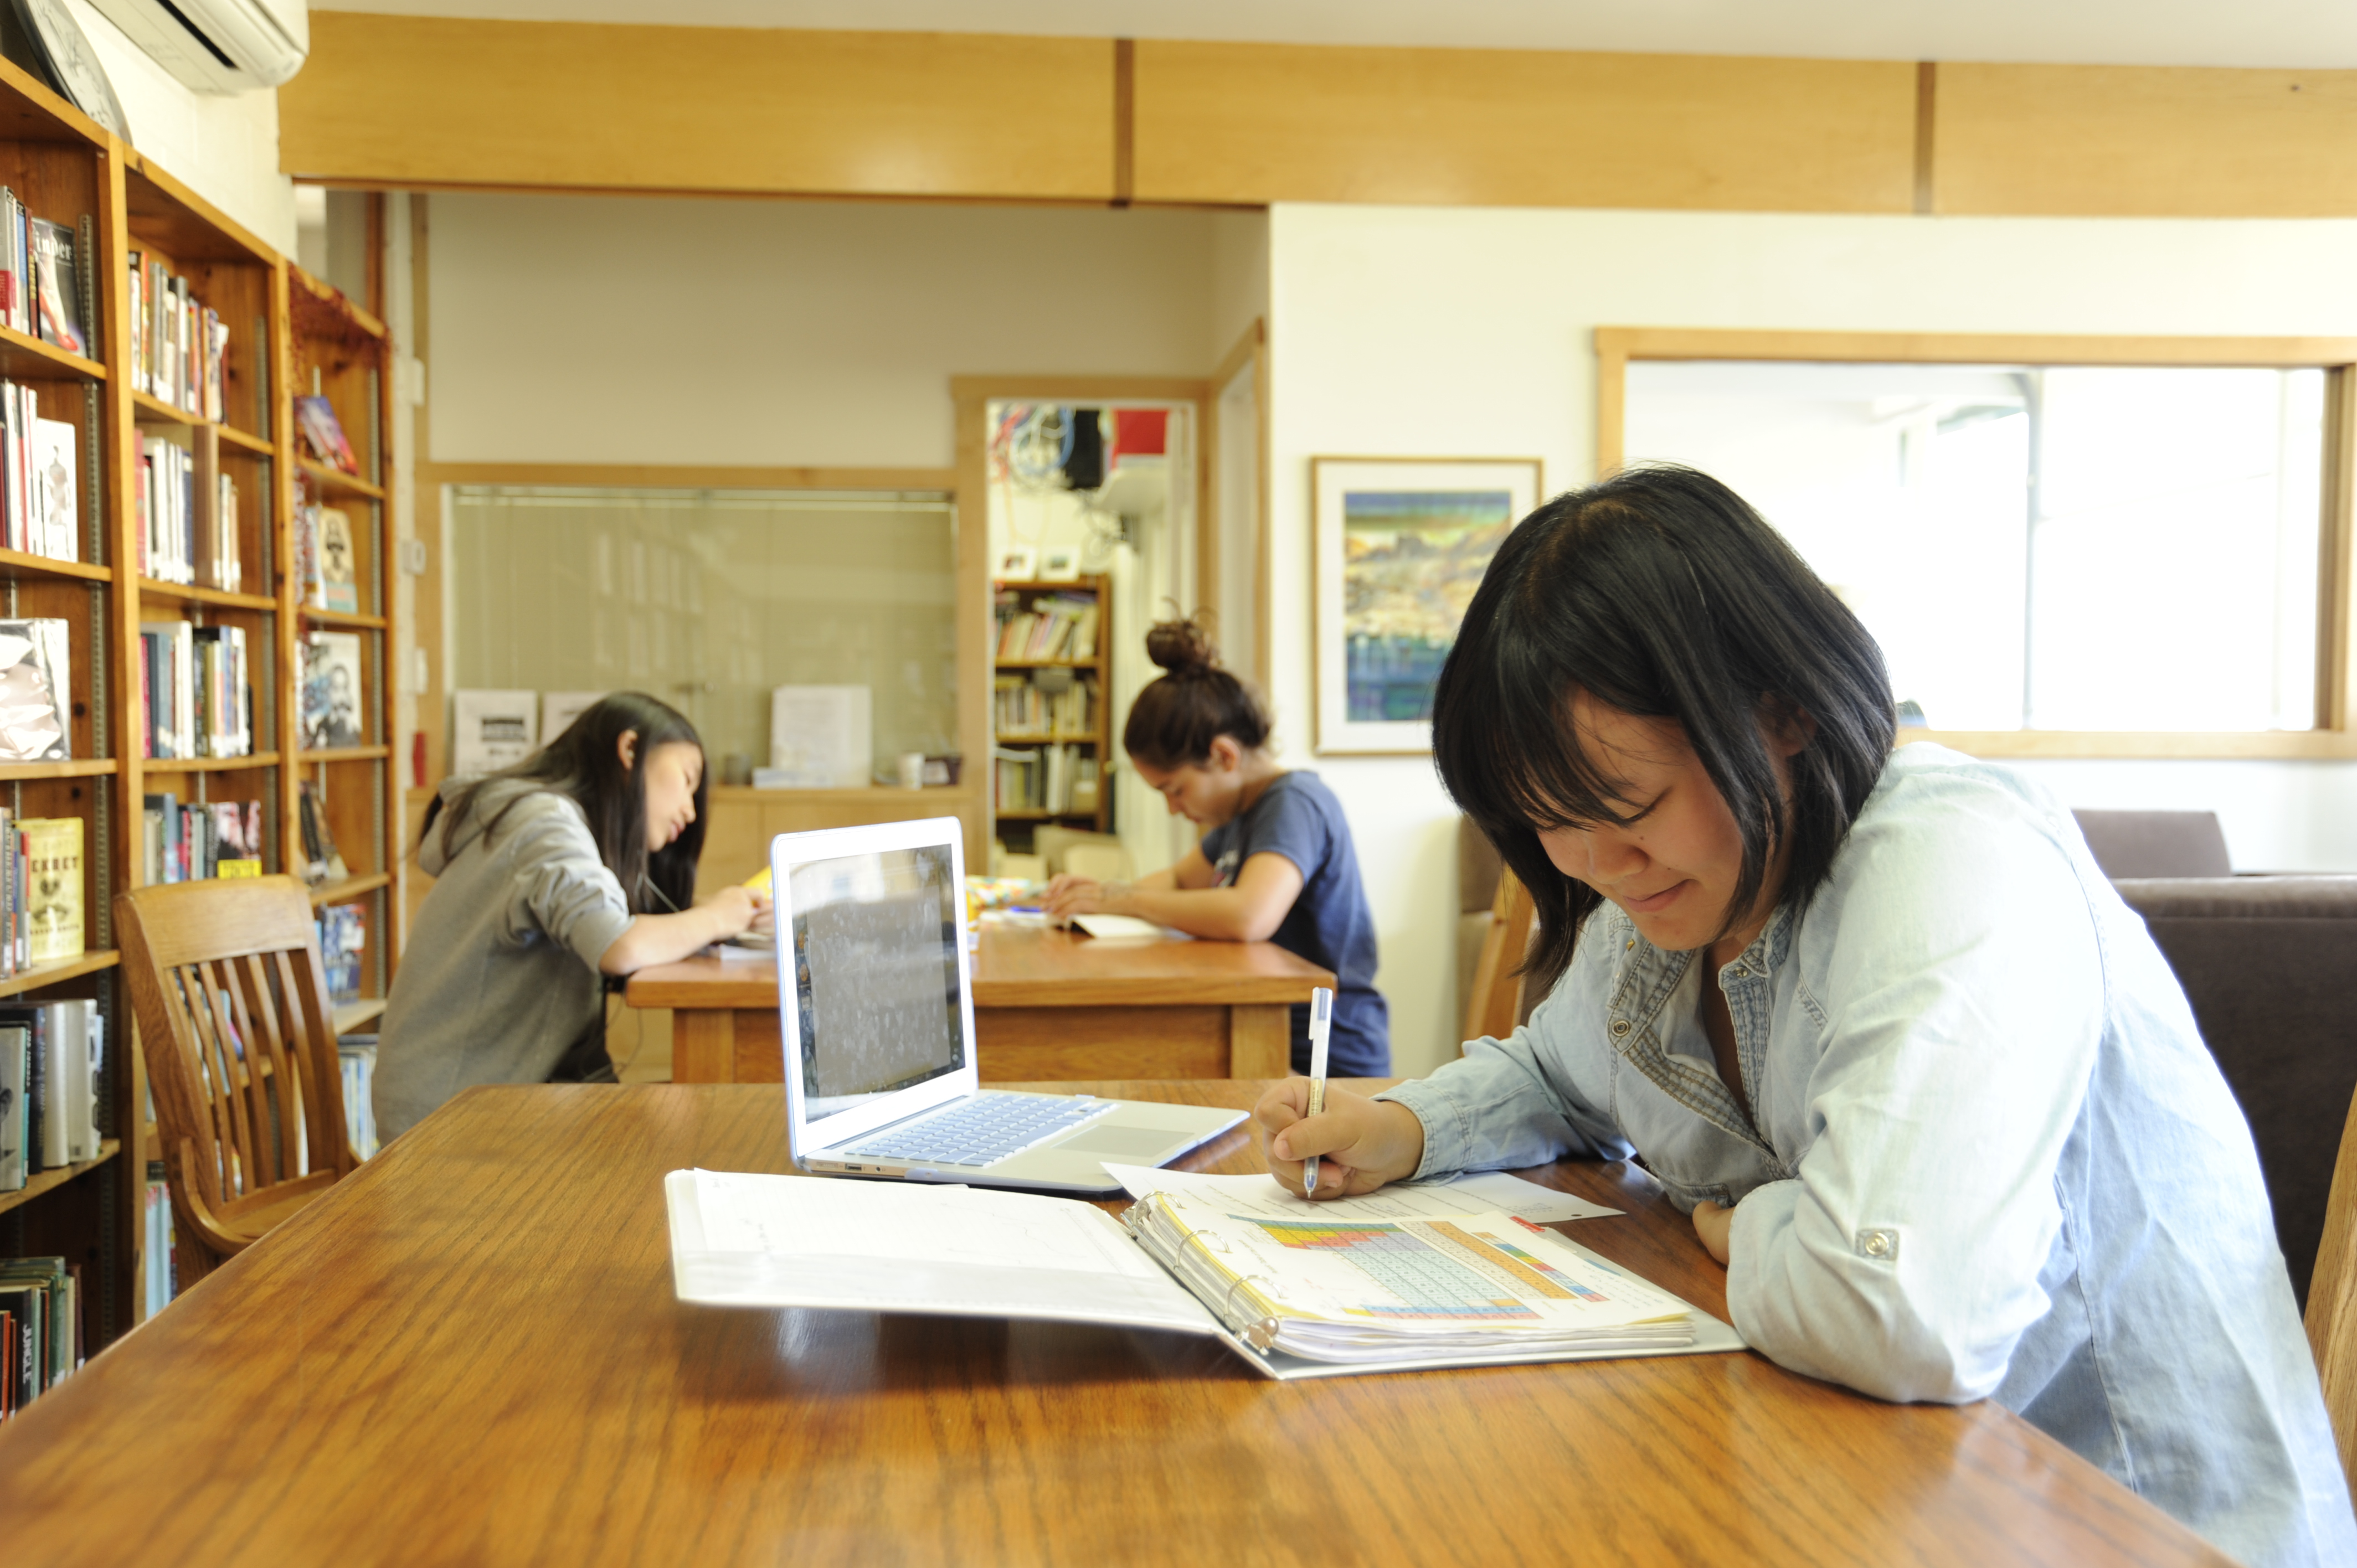 Students Prepare for Final Exams